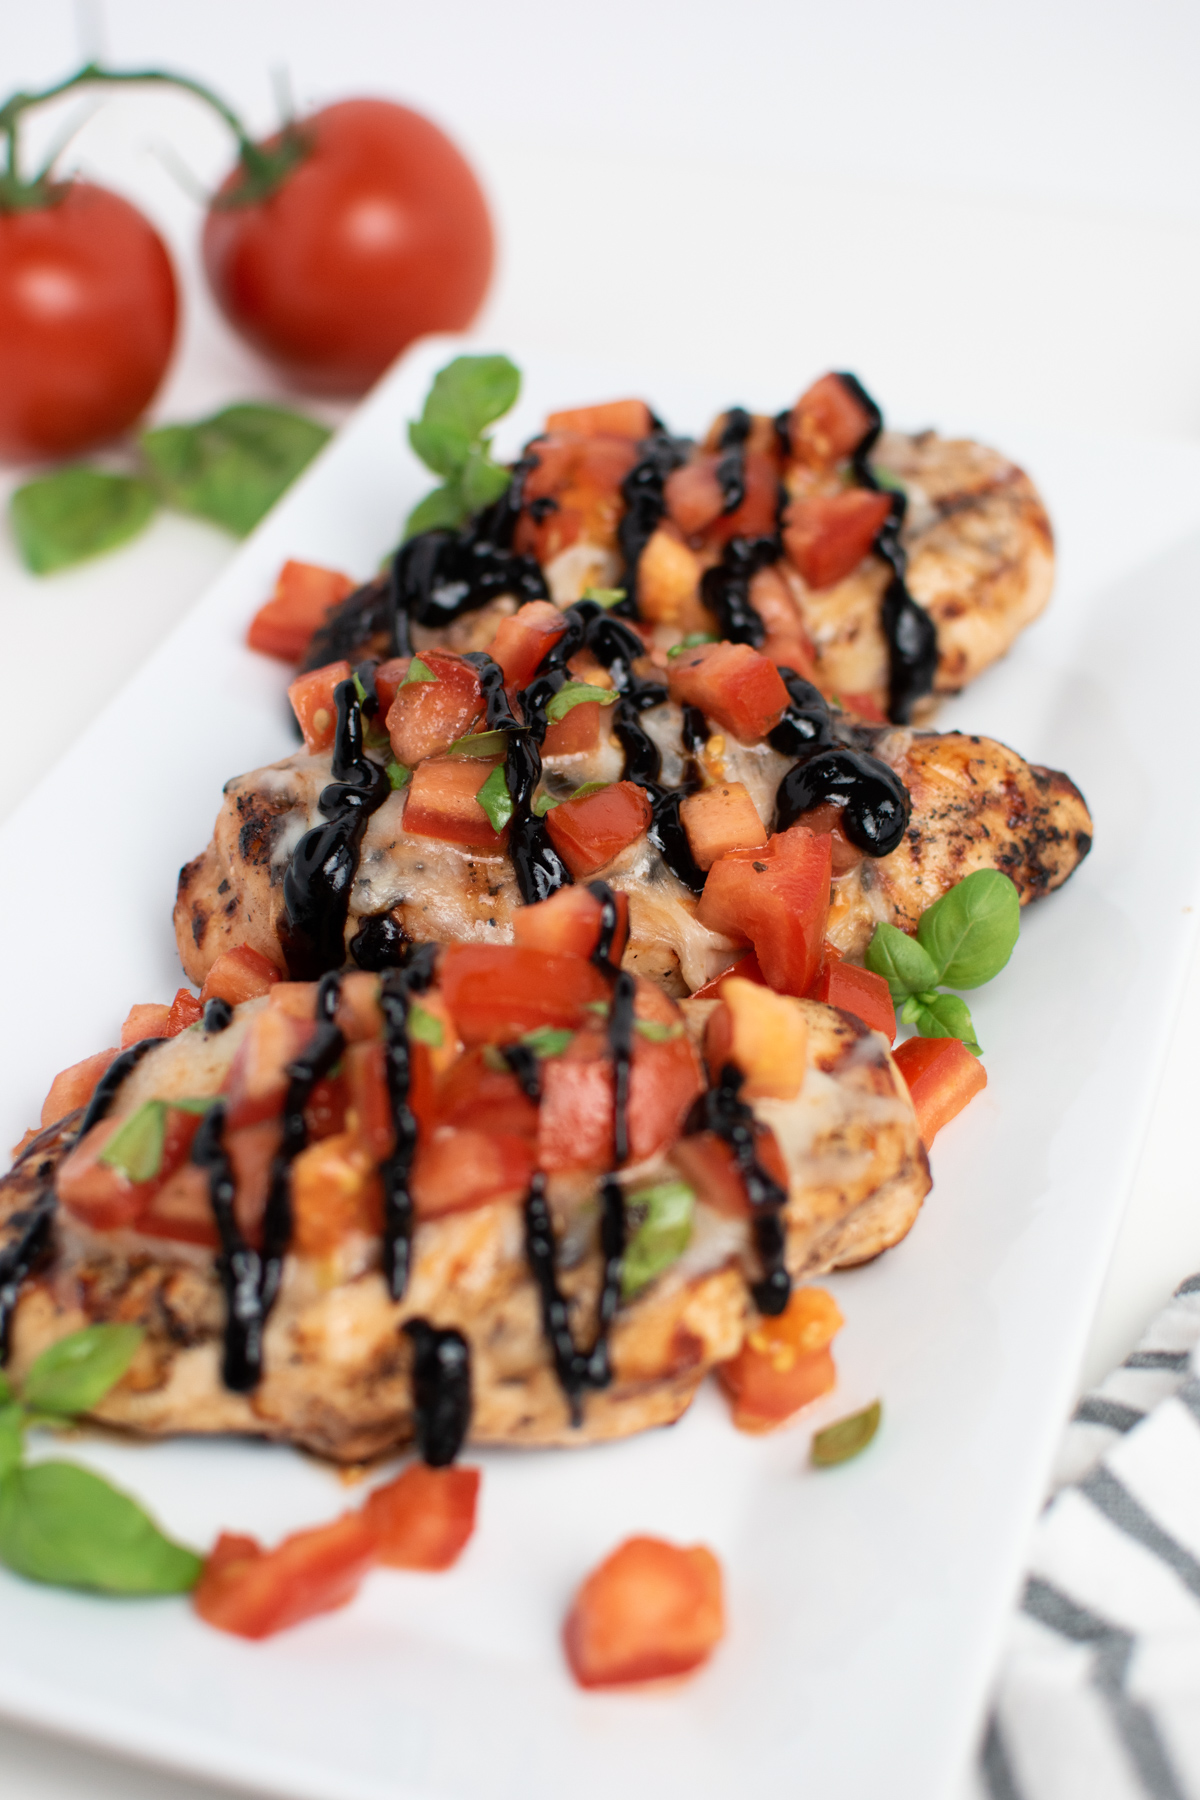 Three pieces of grilled bruschetta chicken on white platter with fresh tomatoes in background.